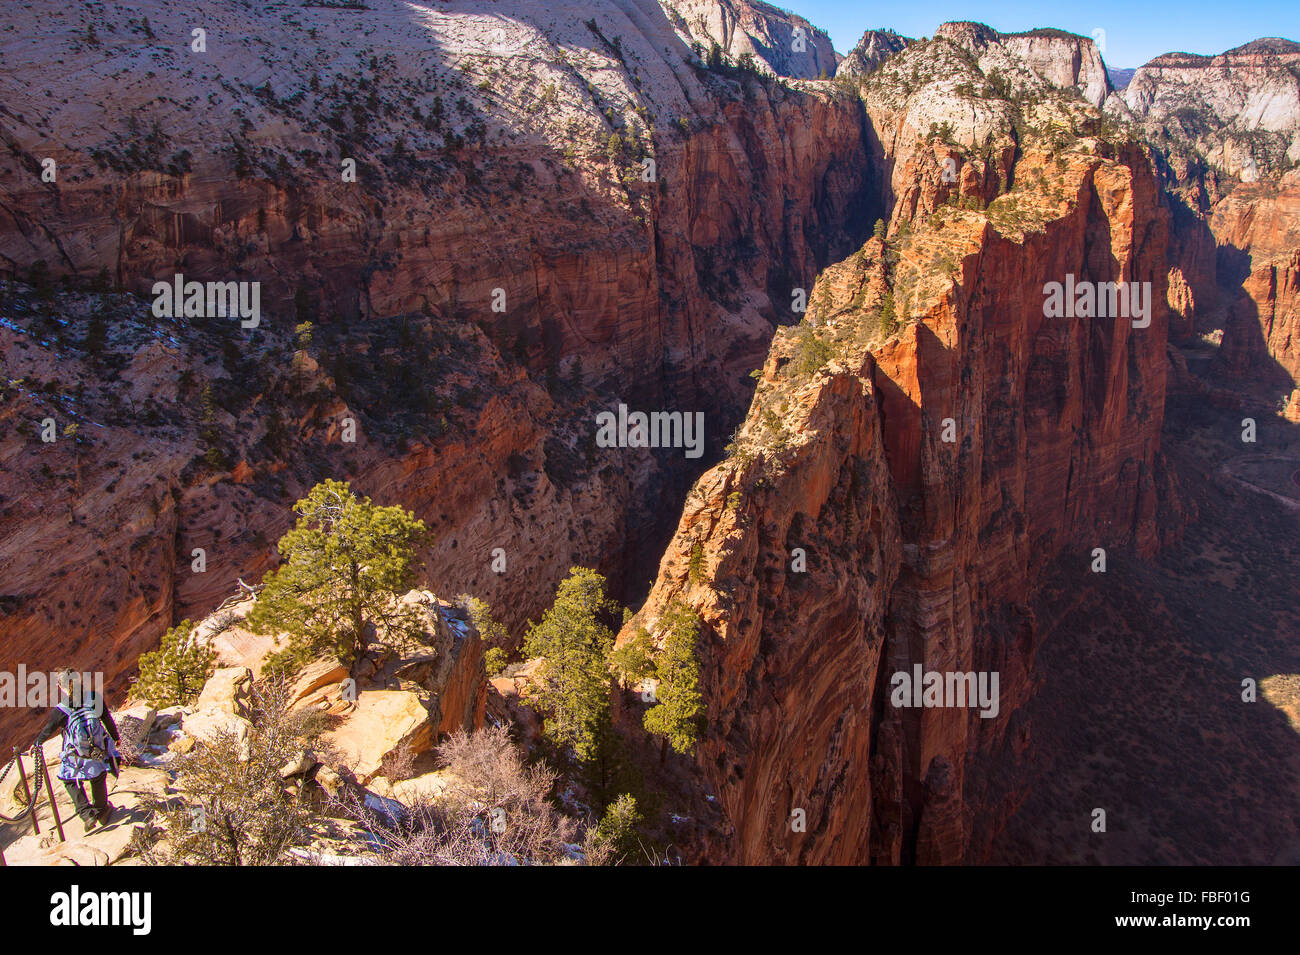 Hike to Angels Landing, Zion National Park, Utah - Stock Image